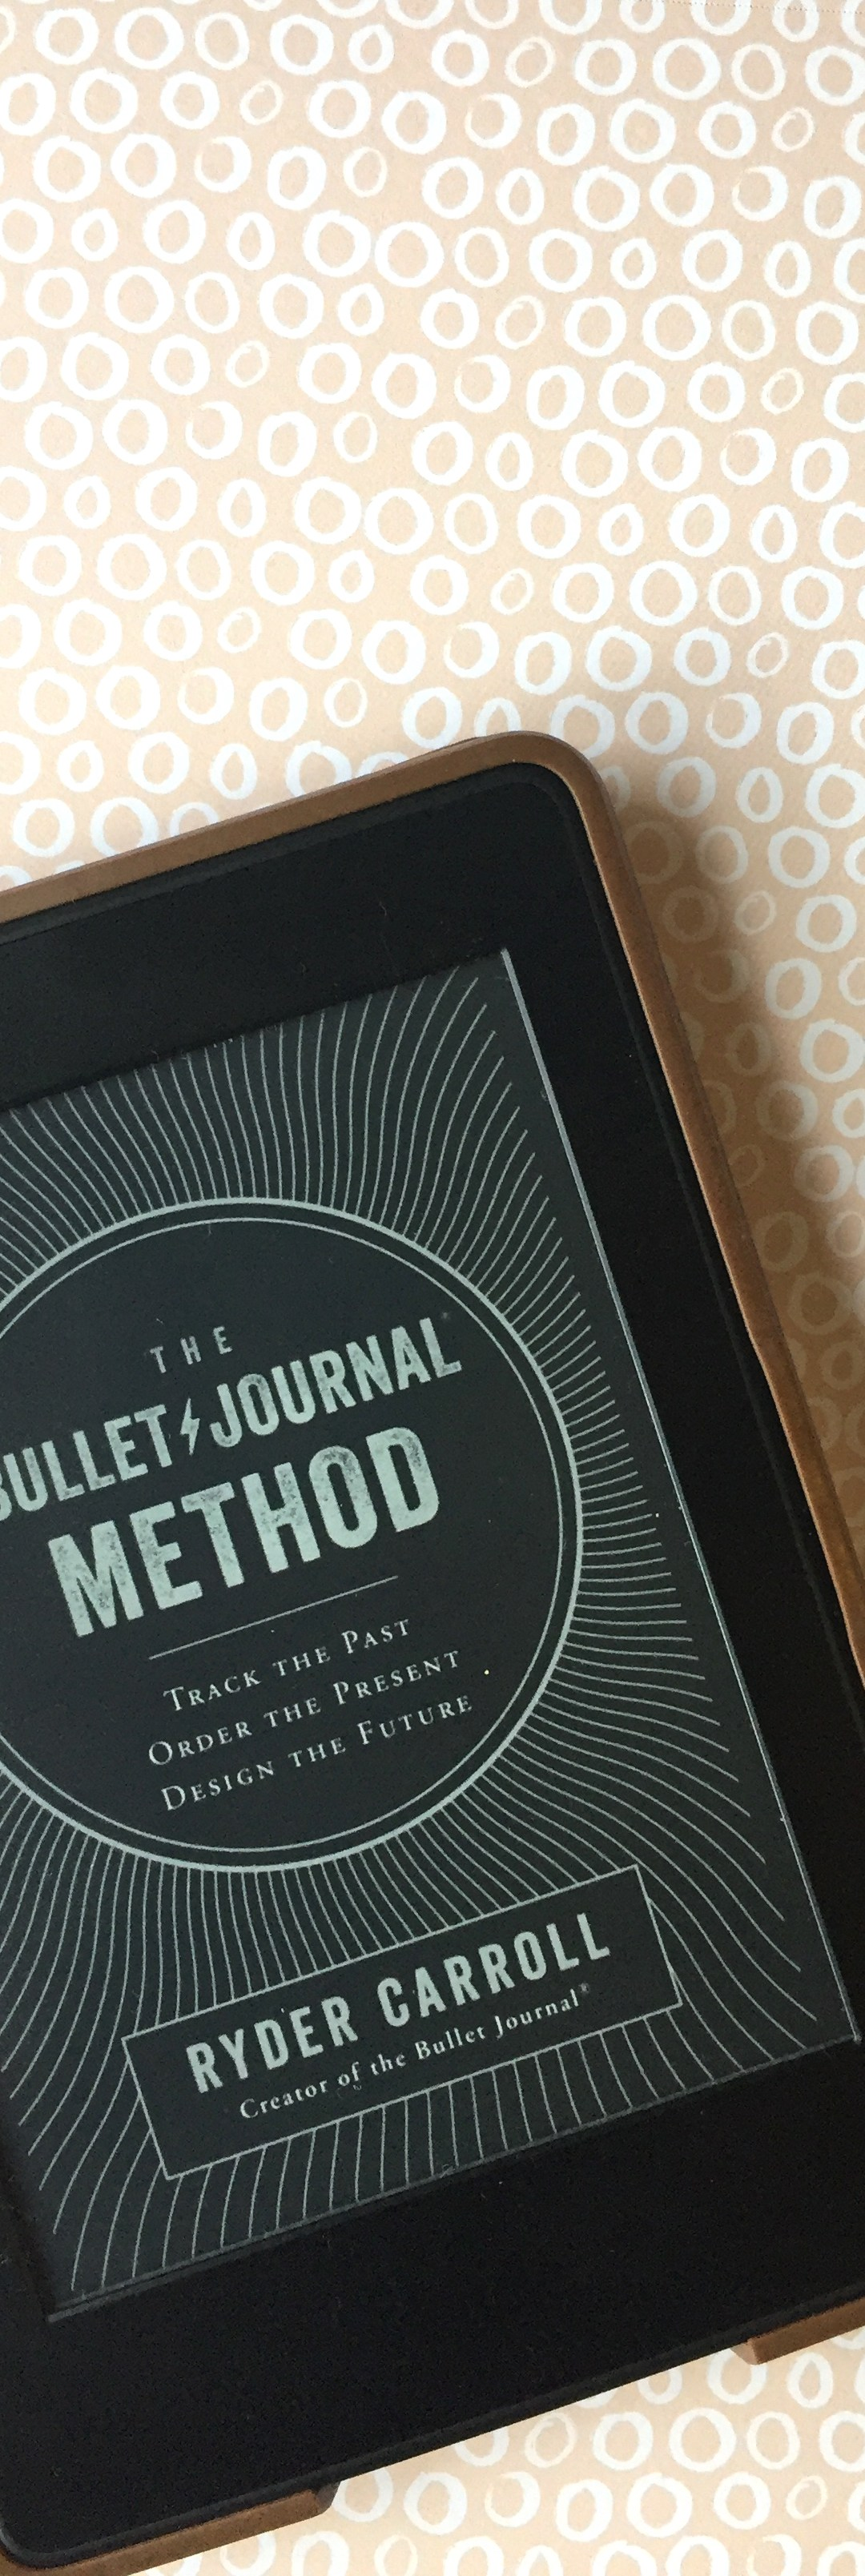 Reviewing The Bullet Journal Method Book